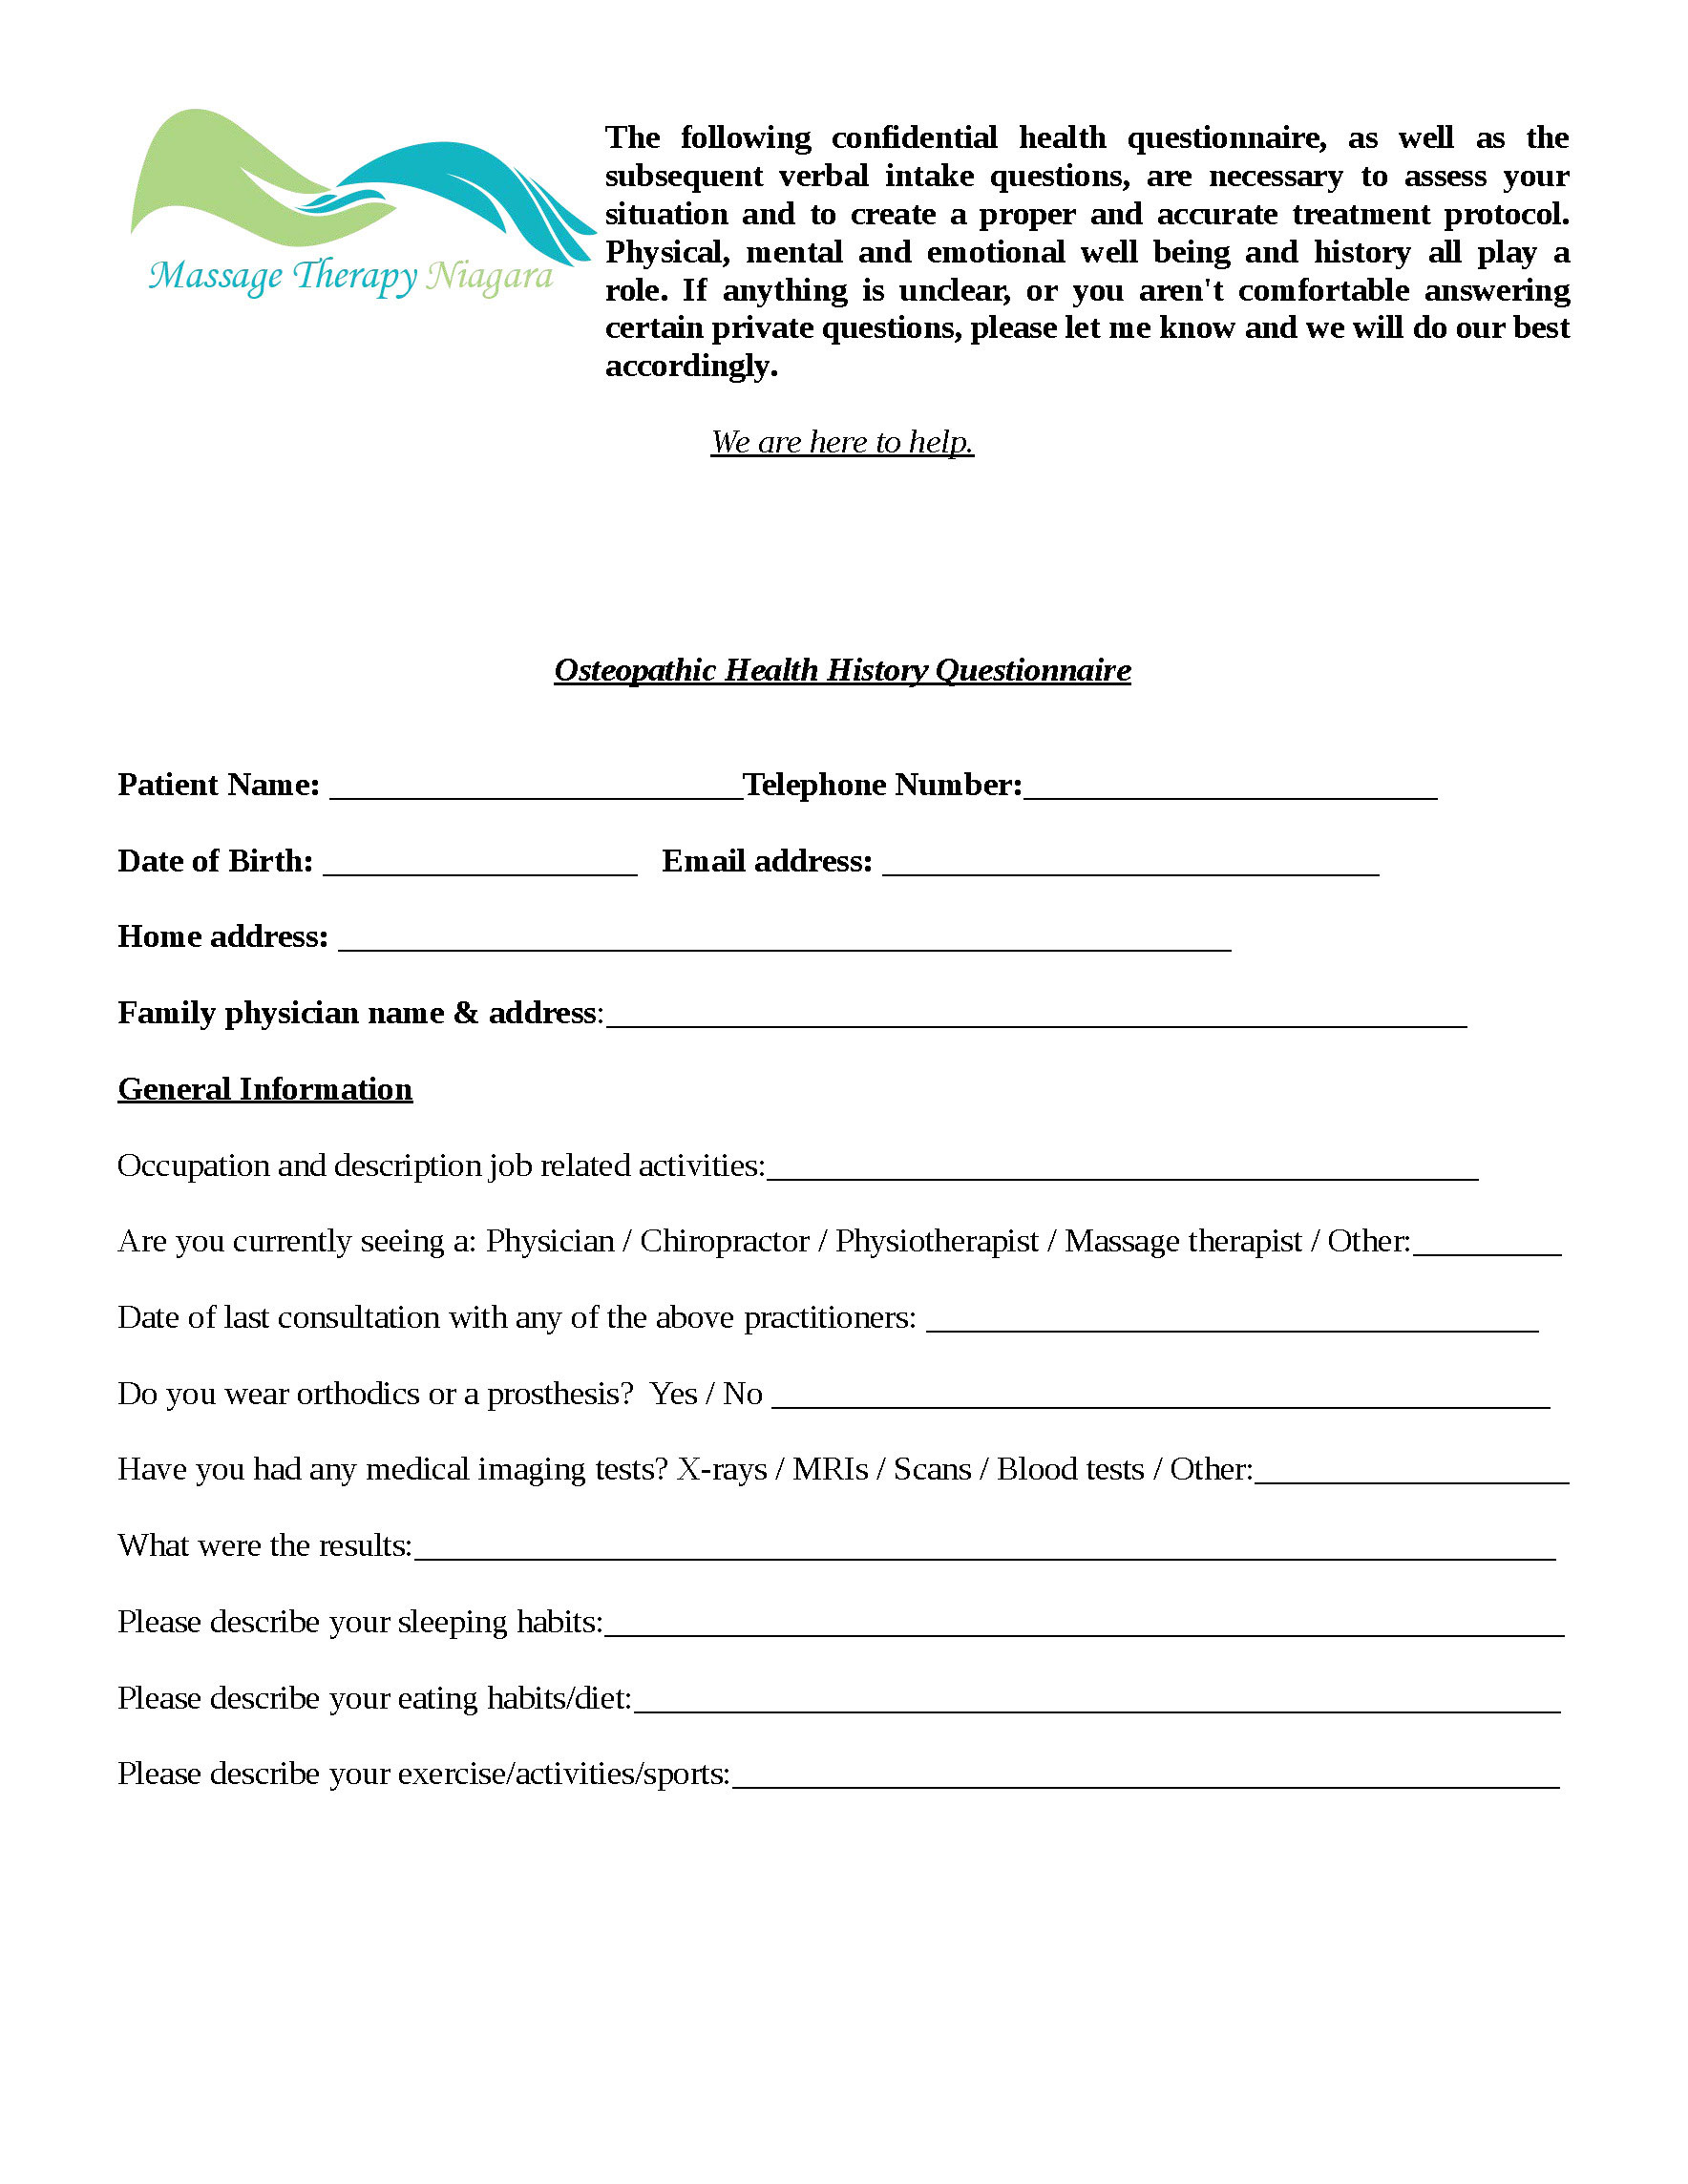 Osteopathy Intake Form